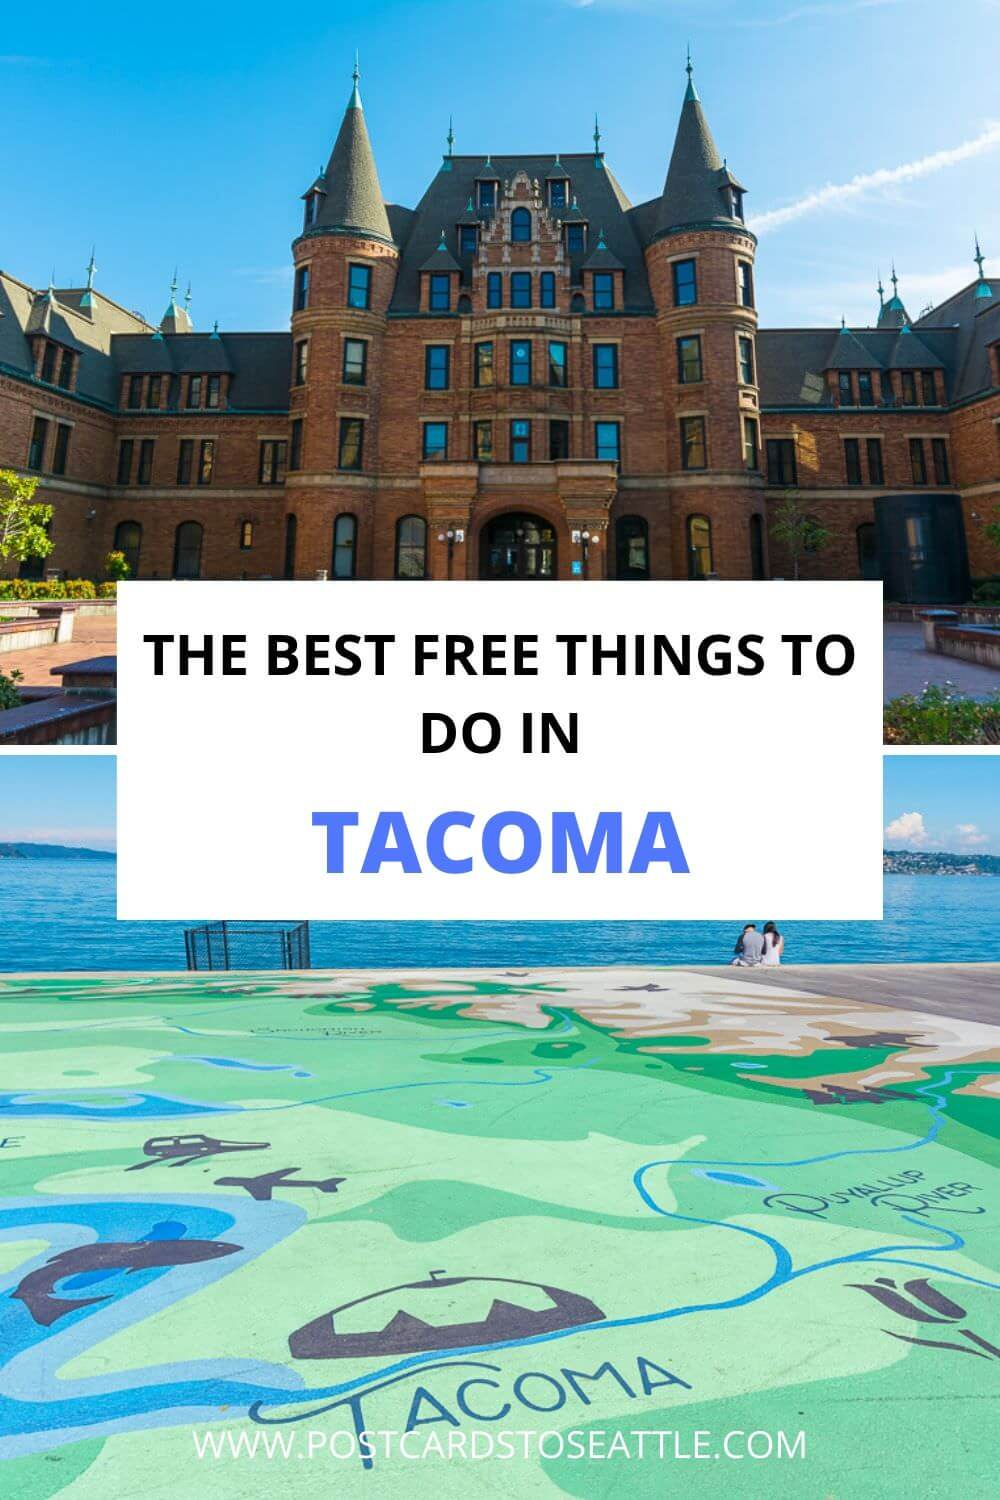 22 Cheap and Free Things to Do in Tacoma